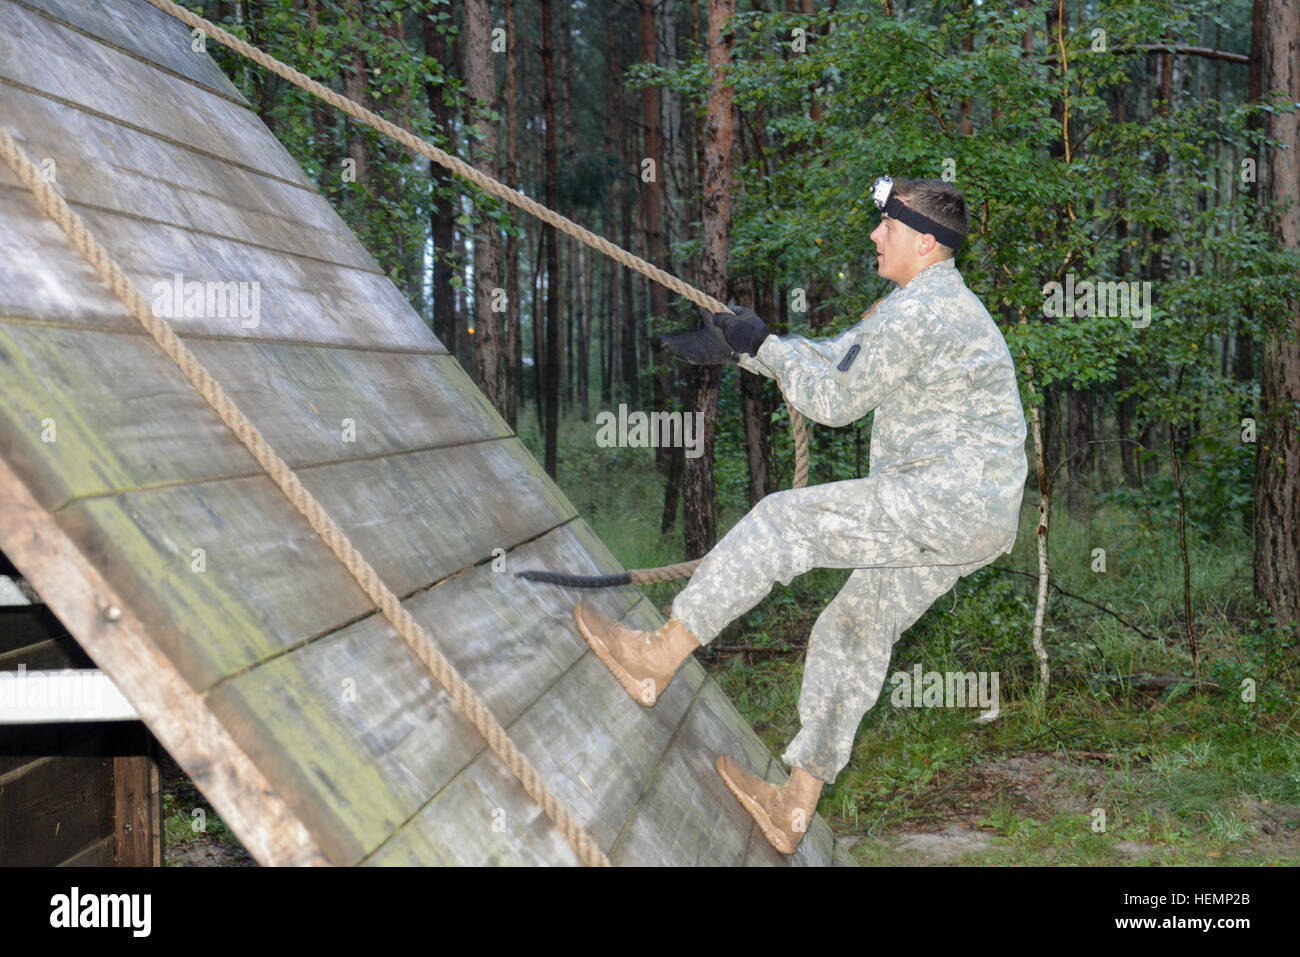 U.S. Army 2nd Lt. Michael Pikul, assigned to the 30th Medical Command,  gets over the 'Slanted Wall' on - Stock Image